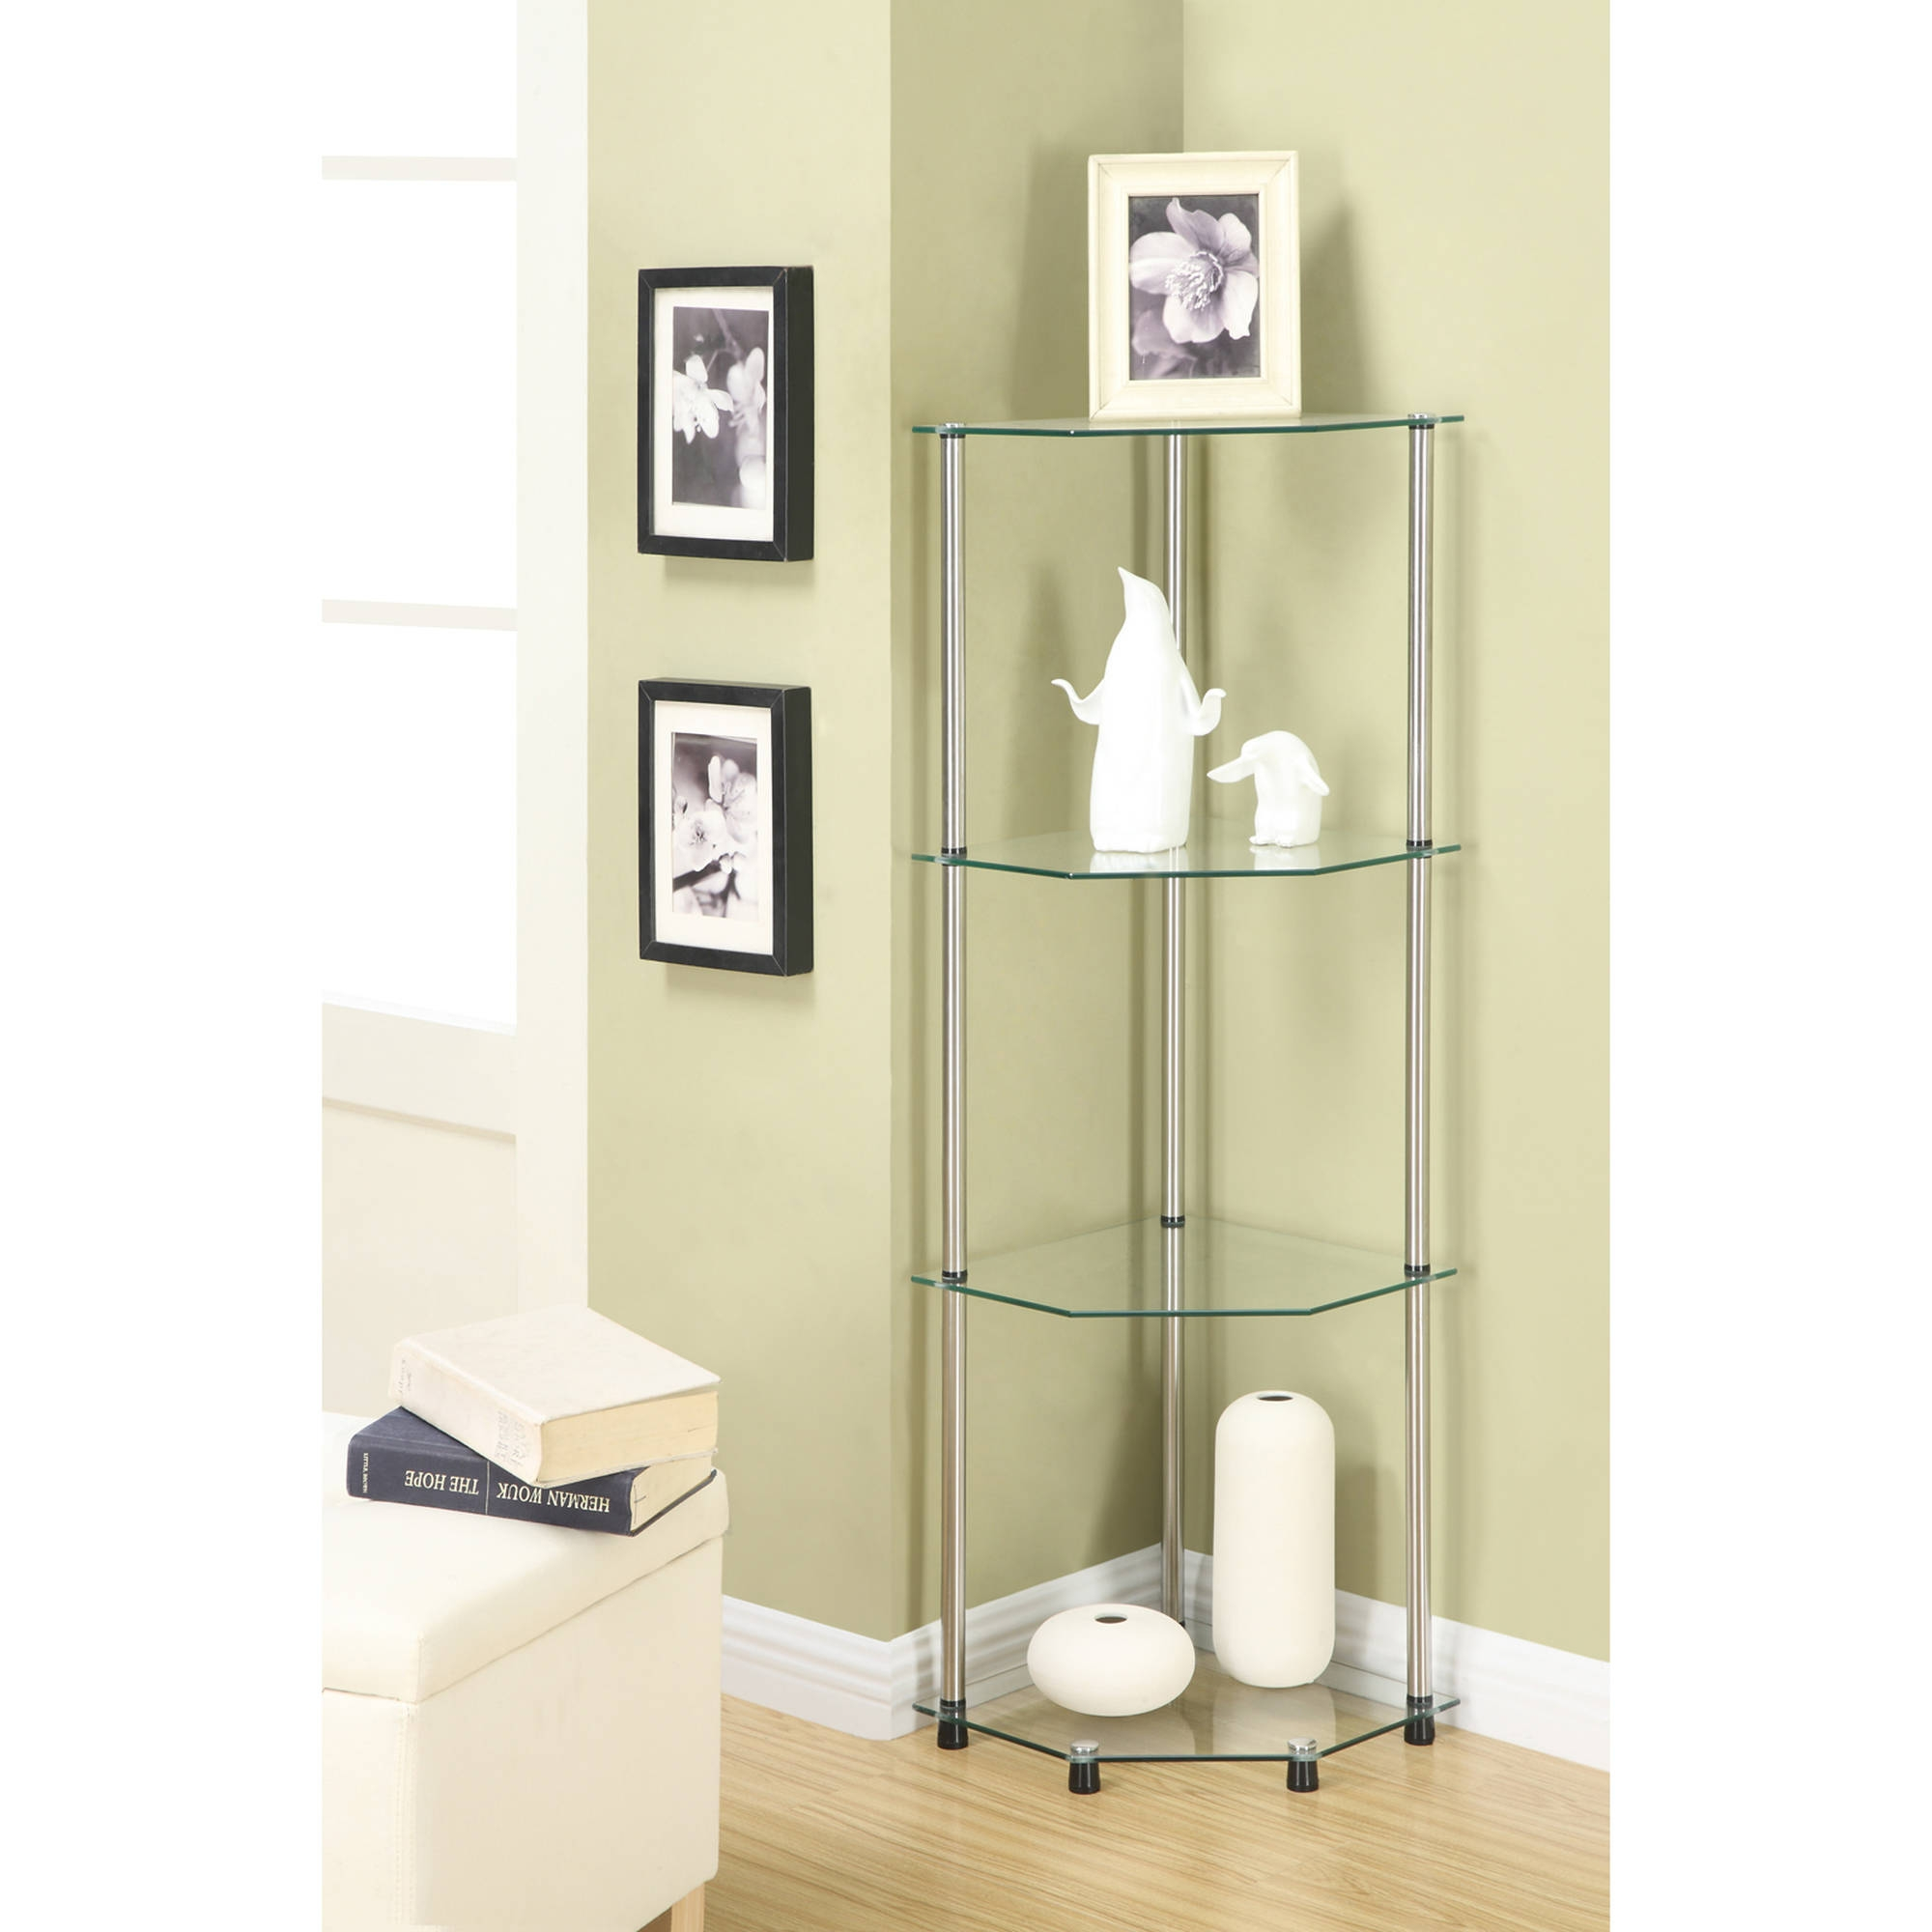 12 photo of glass corner shelves - Glass corner shelf for living room ...